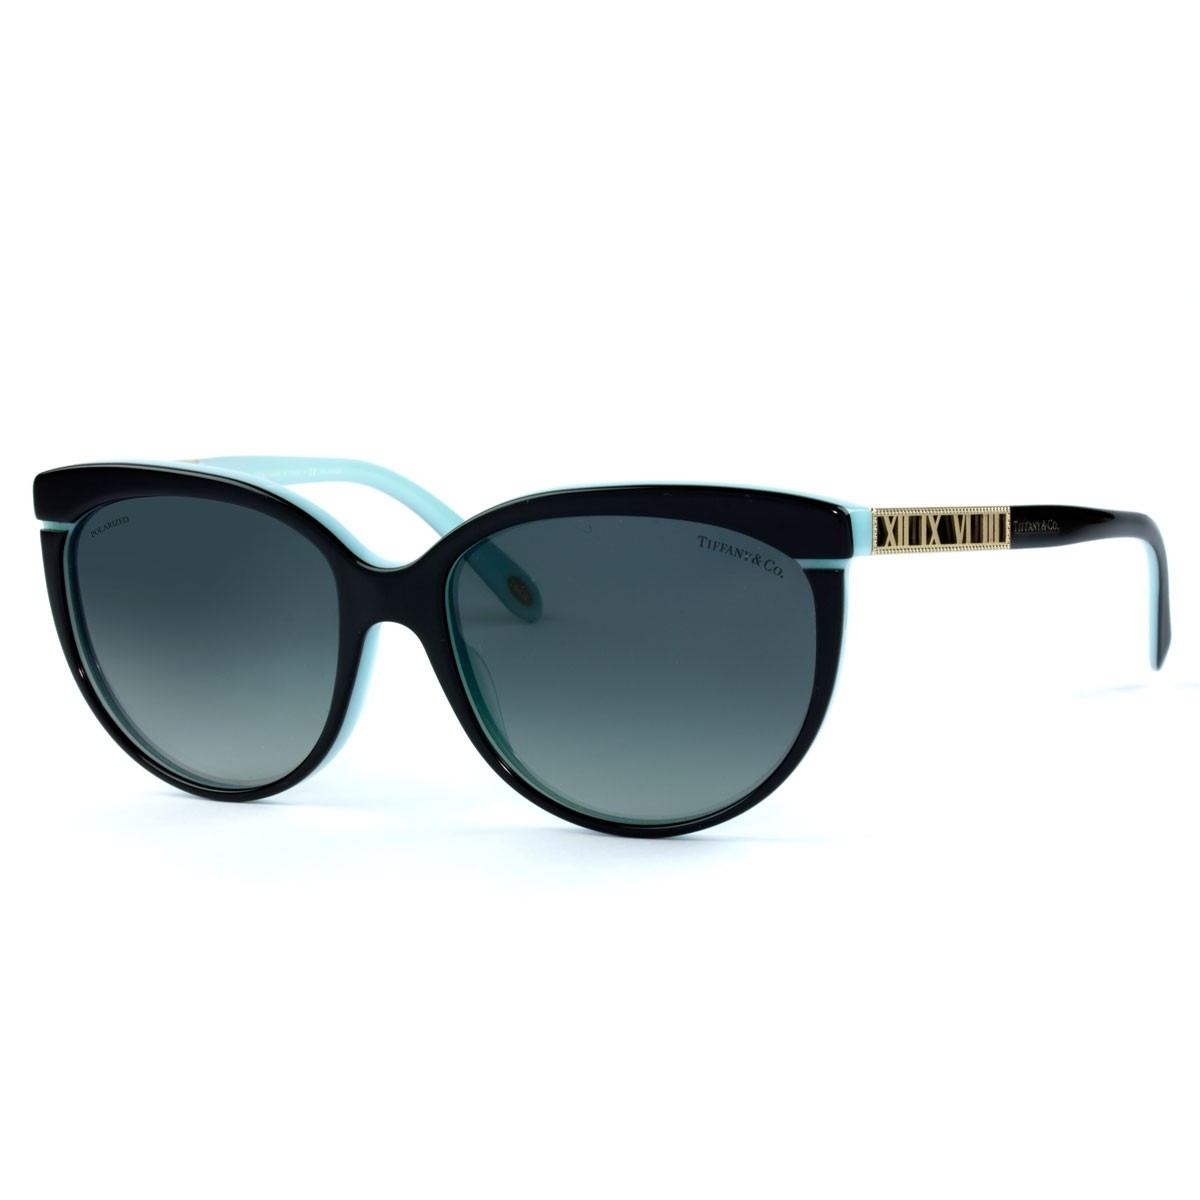 TIFFANY TF4097 Preto/Azul 8055/T3 56-16 140 3P